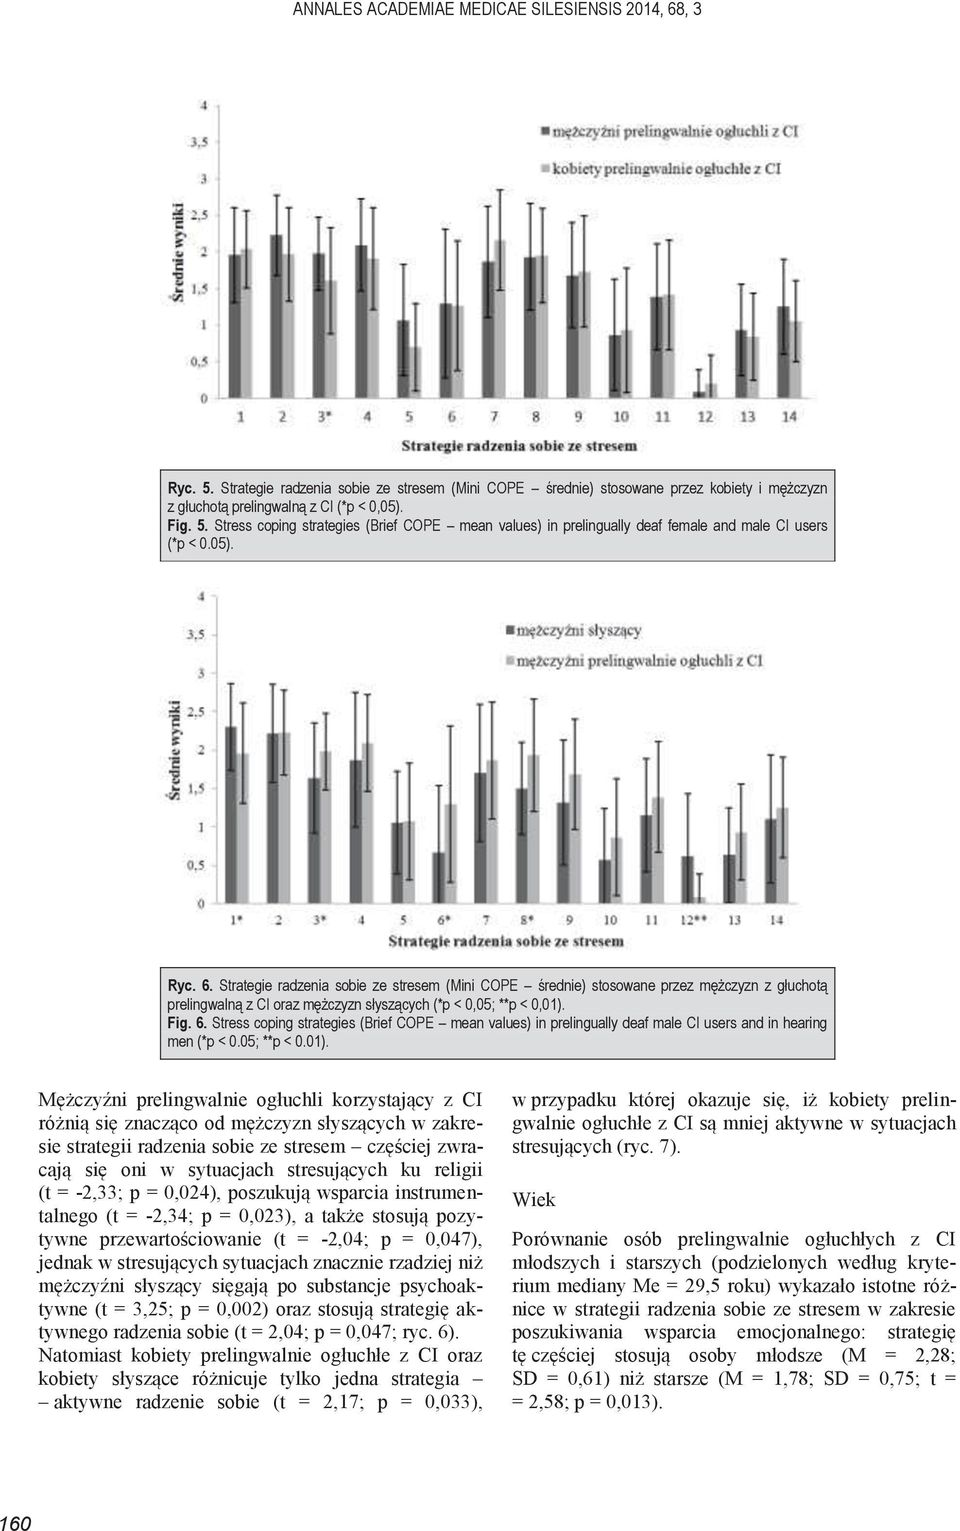 Stress coping strategies (Brief COPE mean values) in prelingually deaf female and male CI users (*p < 0.05). Ryc. 6.